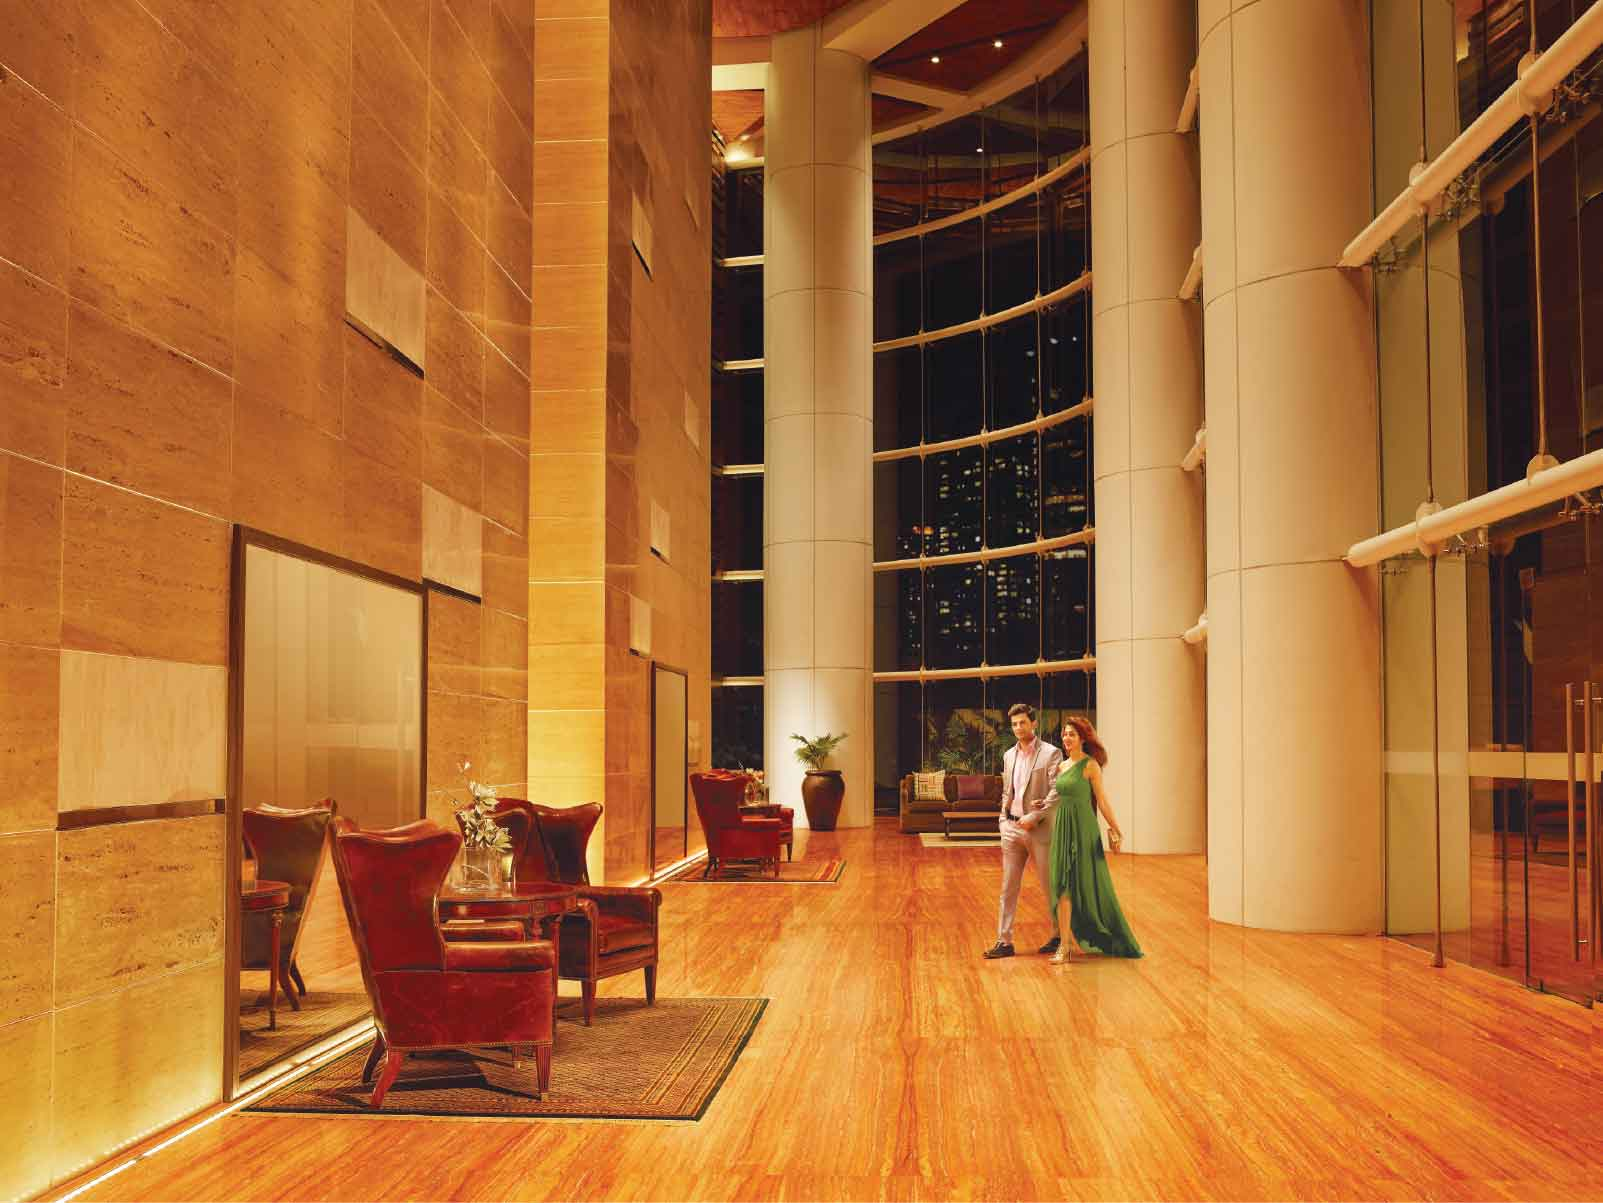 Indiabulls Sky - Grand Quadruple Heighted Lobby